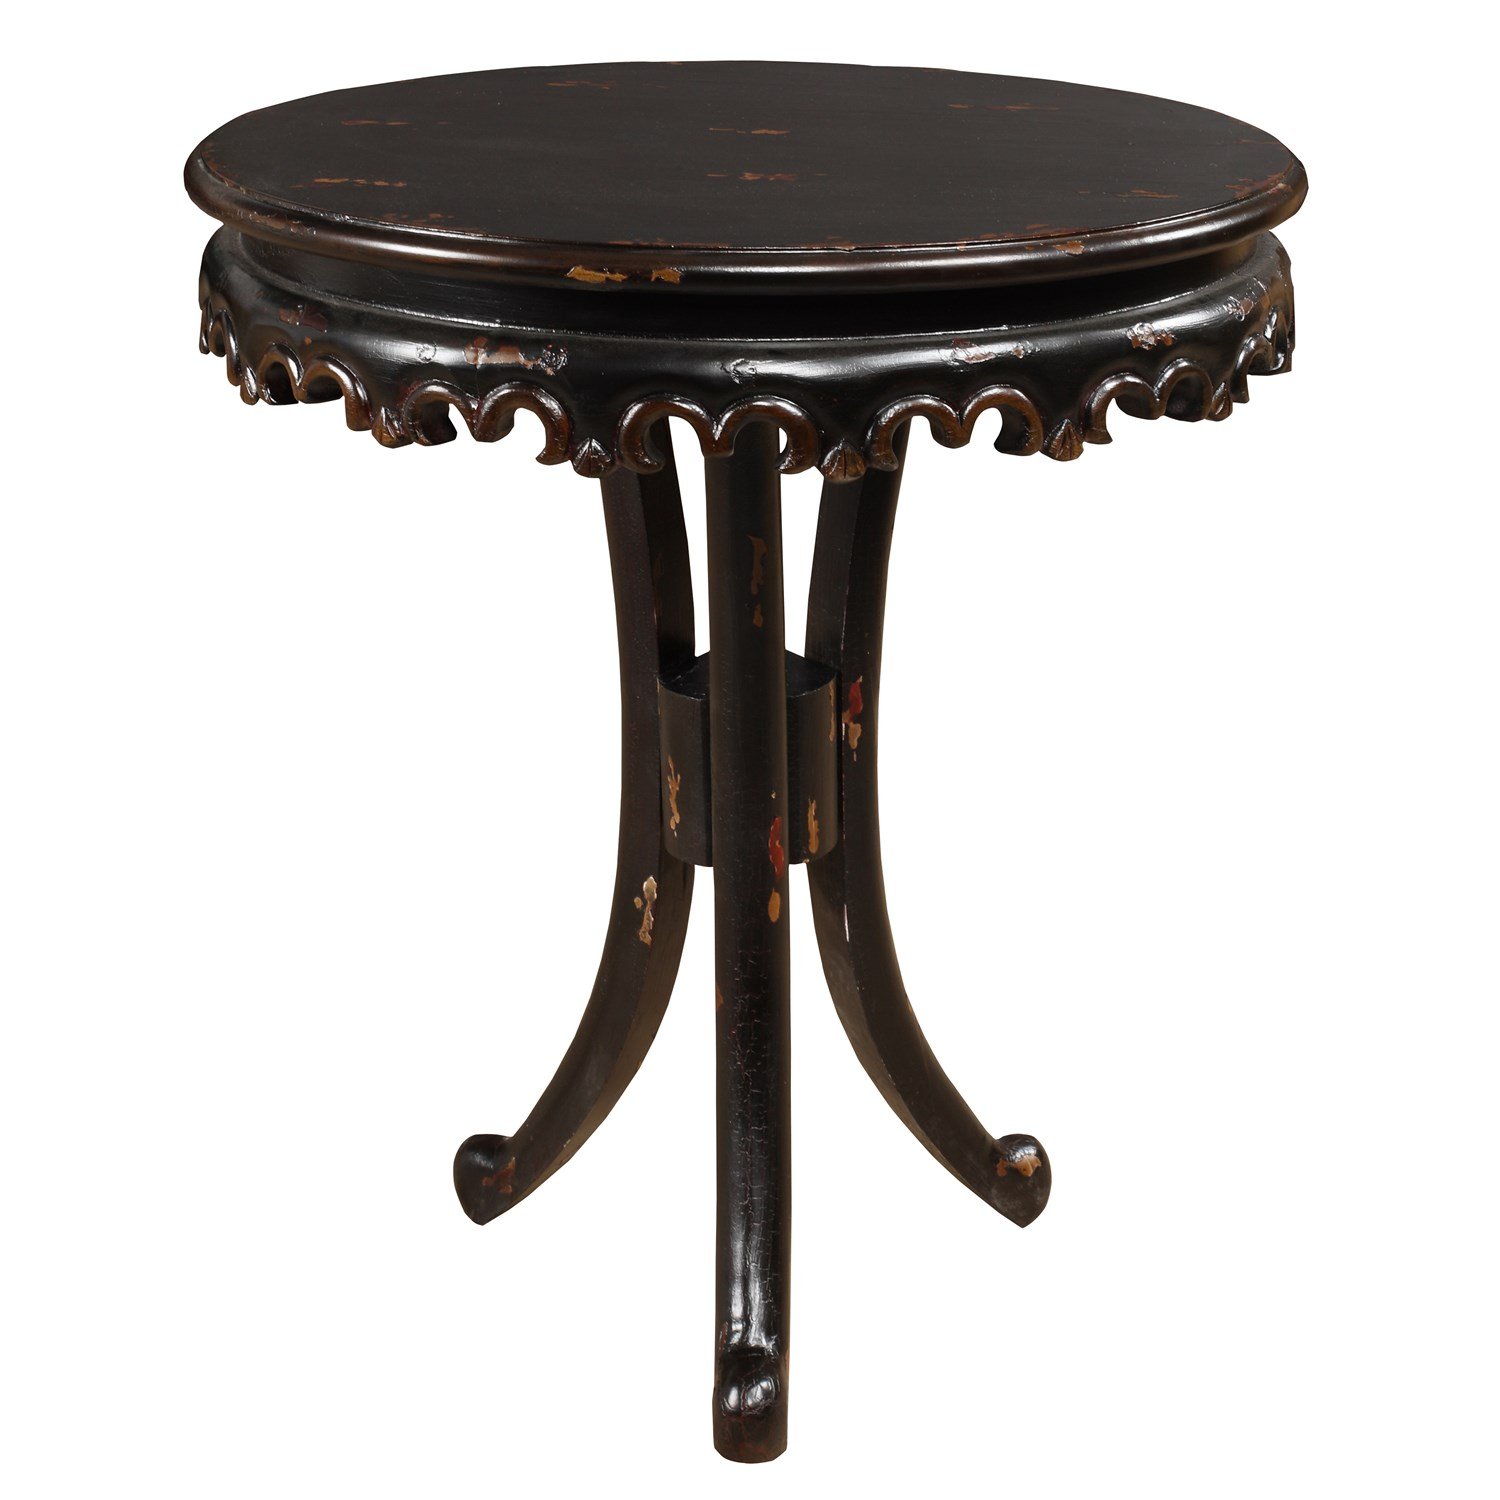 fabulous round pedestal accent table with eslynn swivel impressive nice for living room decor home ideas pottery barn rustic small drum narrow kitchen oak side tables two door